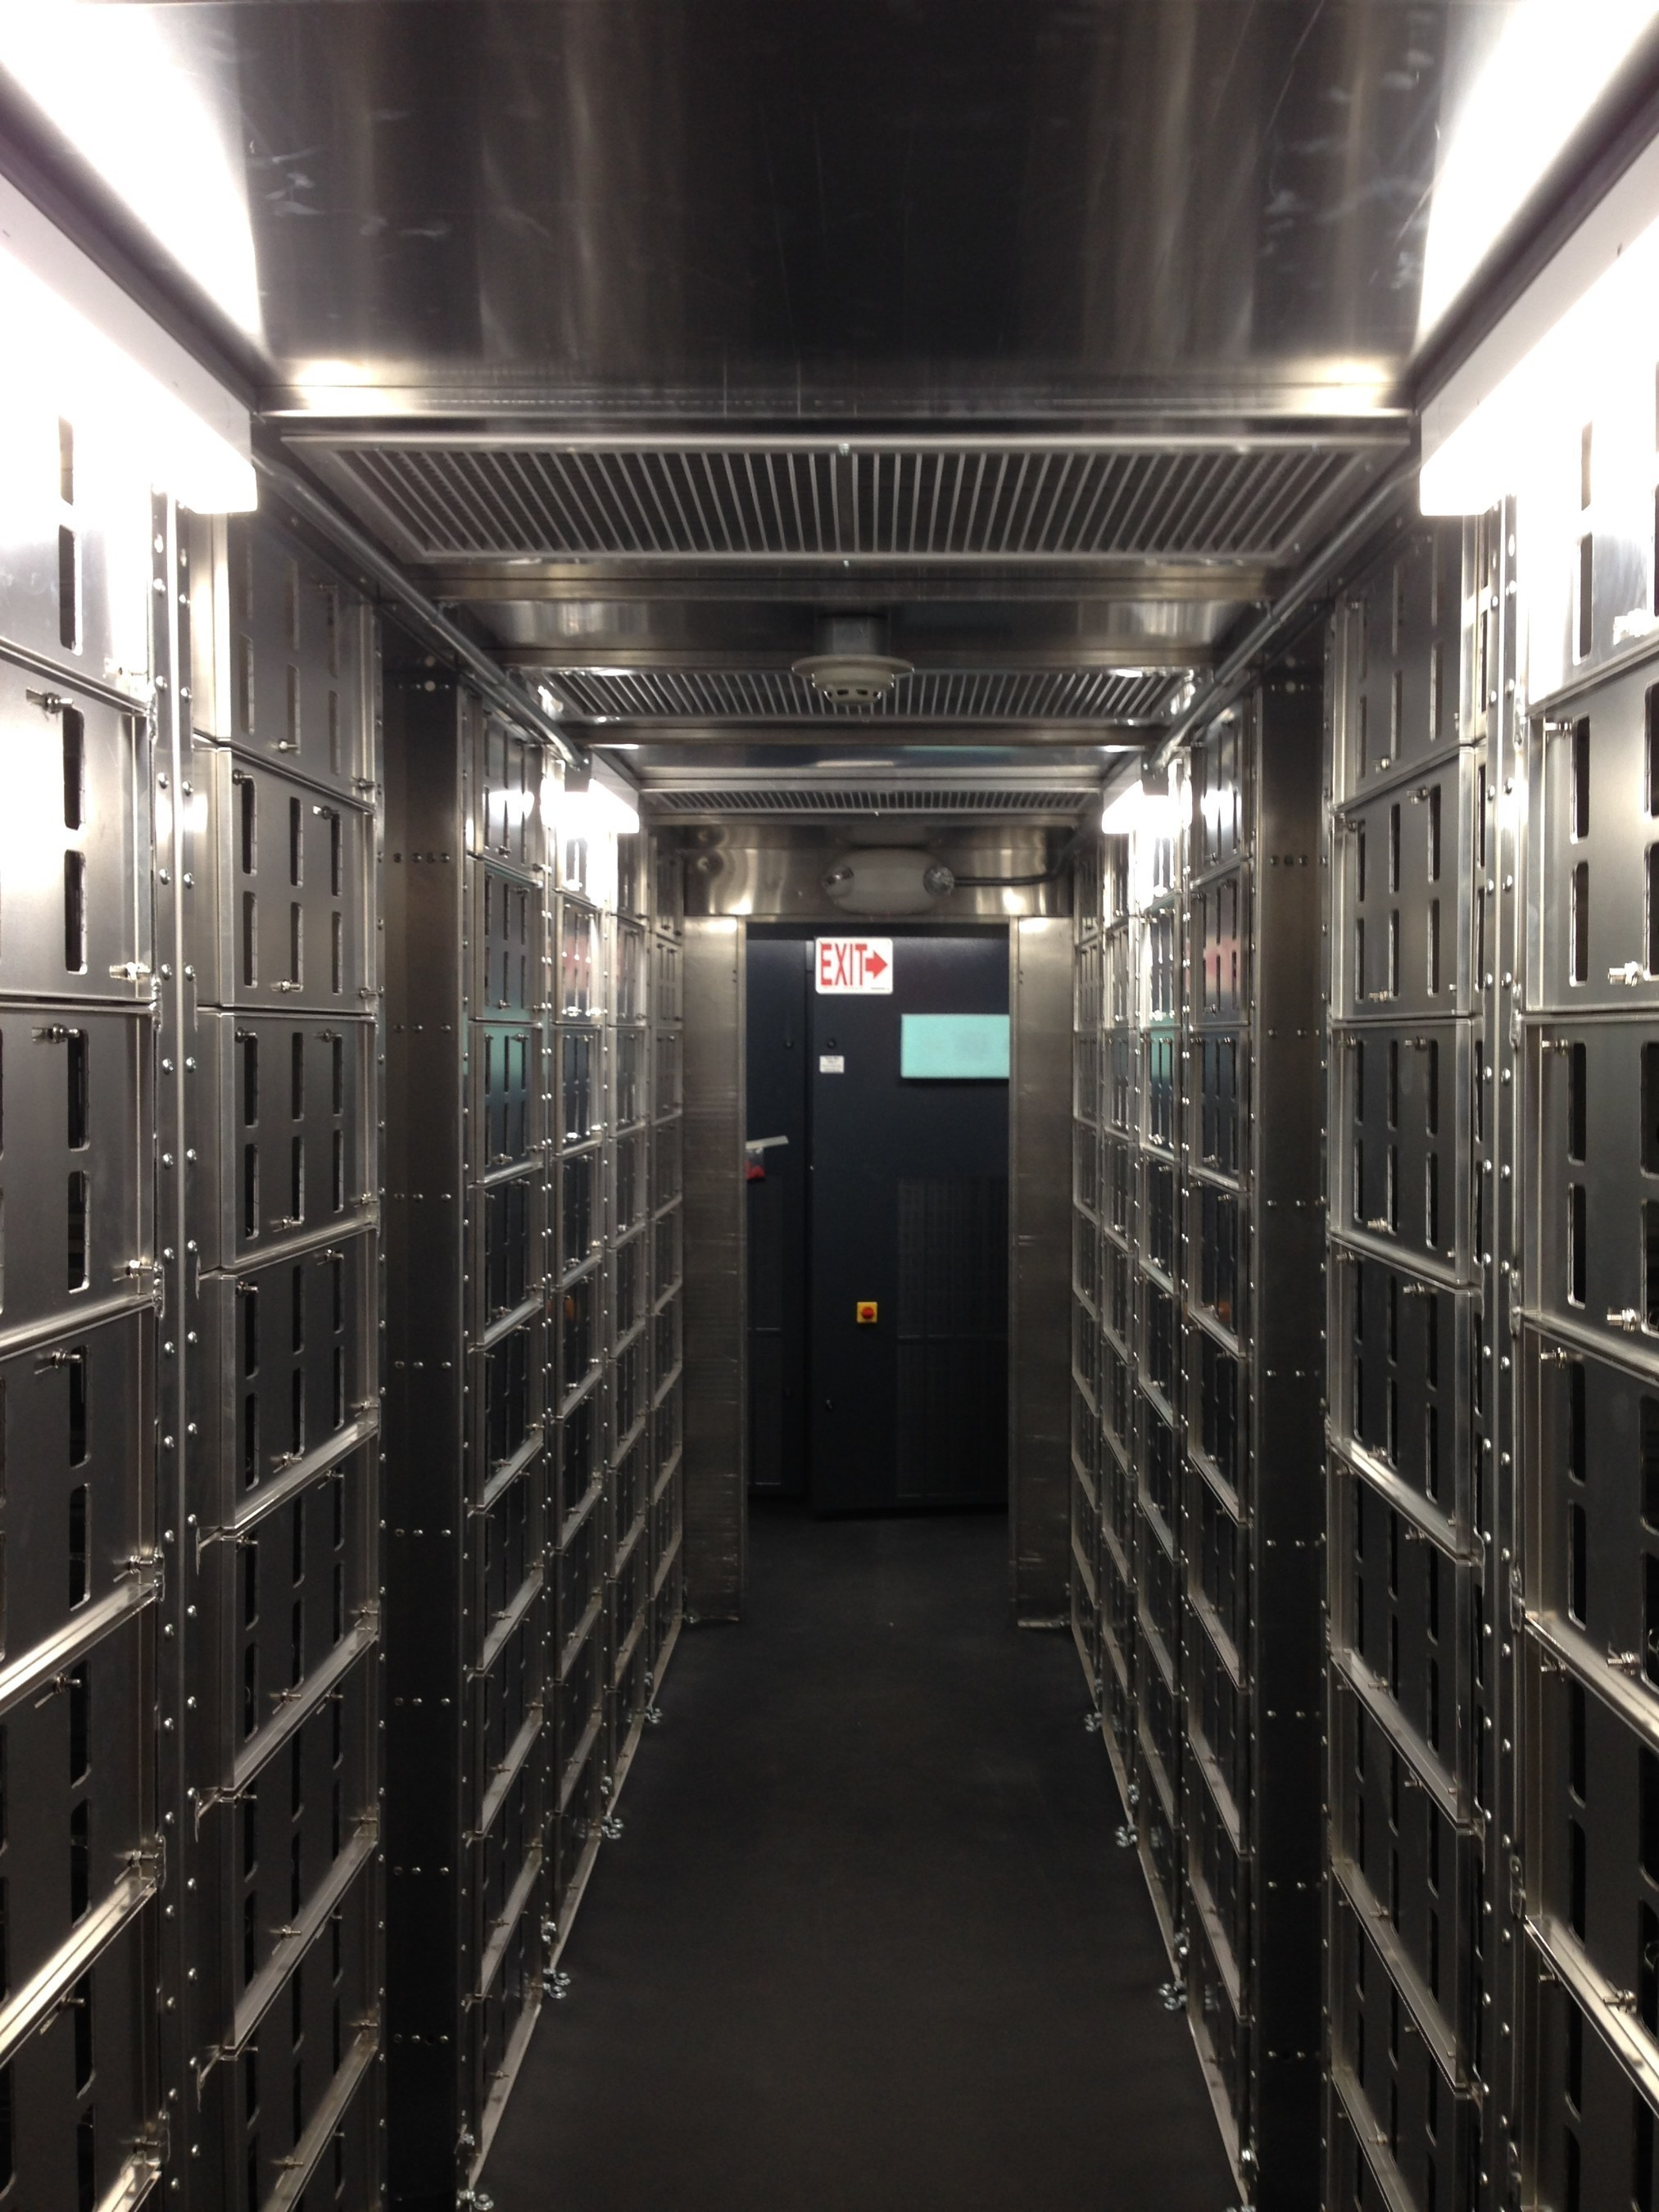 Inside the Willey battery storage container in Hamilton County, Ohio.